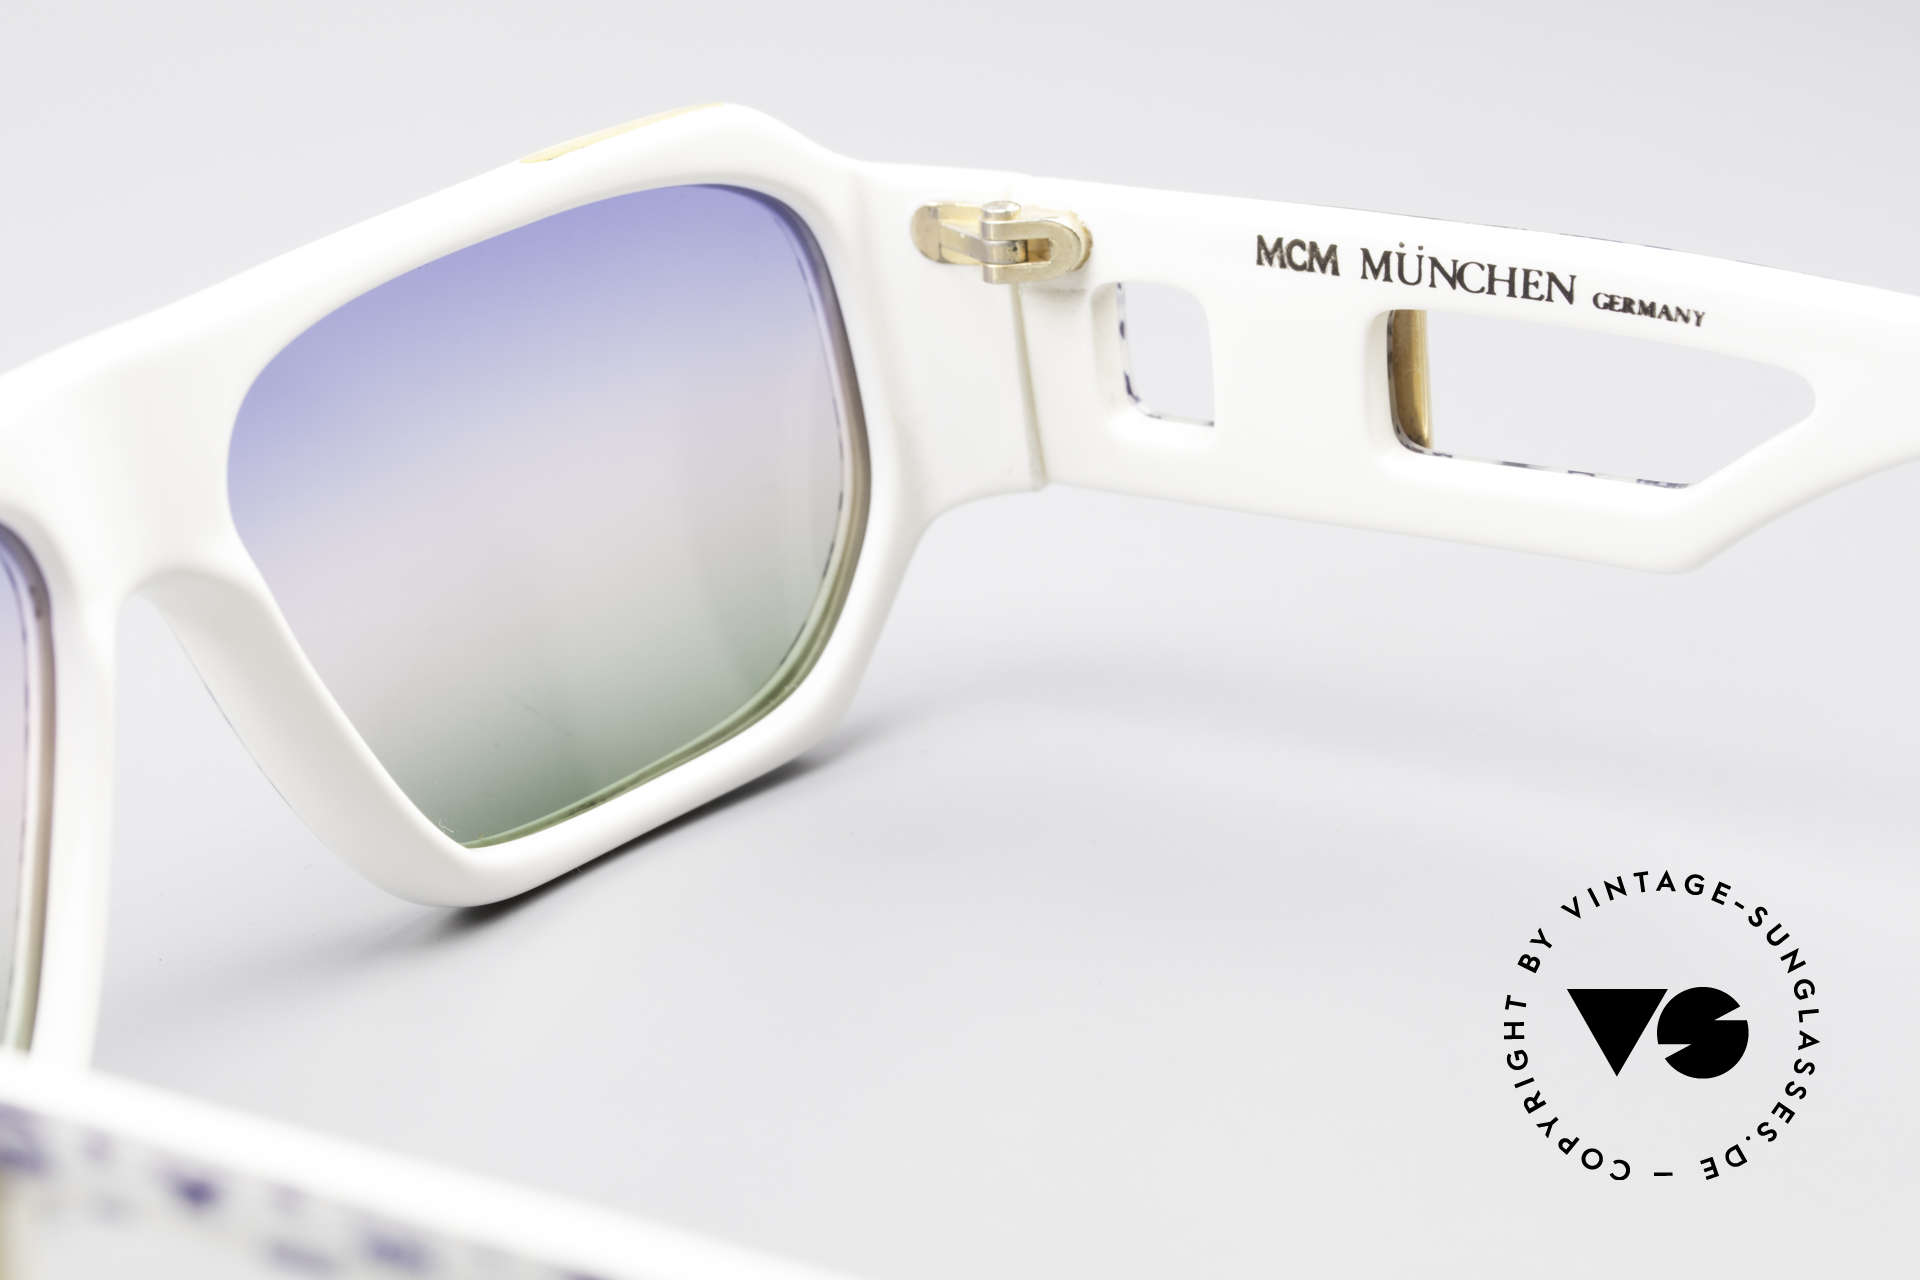 MCM München A2 Rare 80's Designer Sunglasses, NO RETRO, but a rare 80's original + Lacoste case, Made for Men and Women